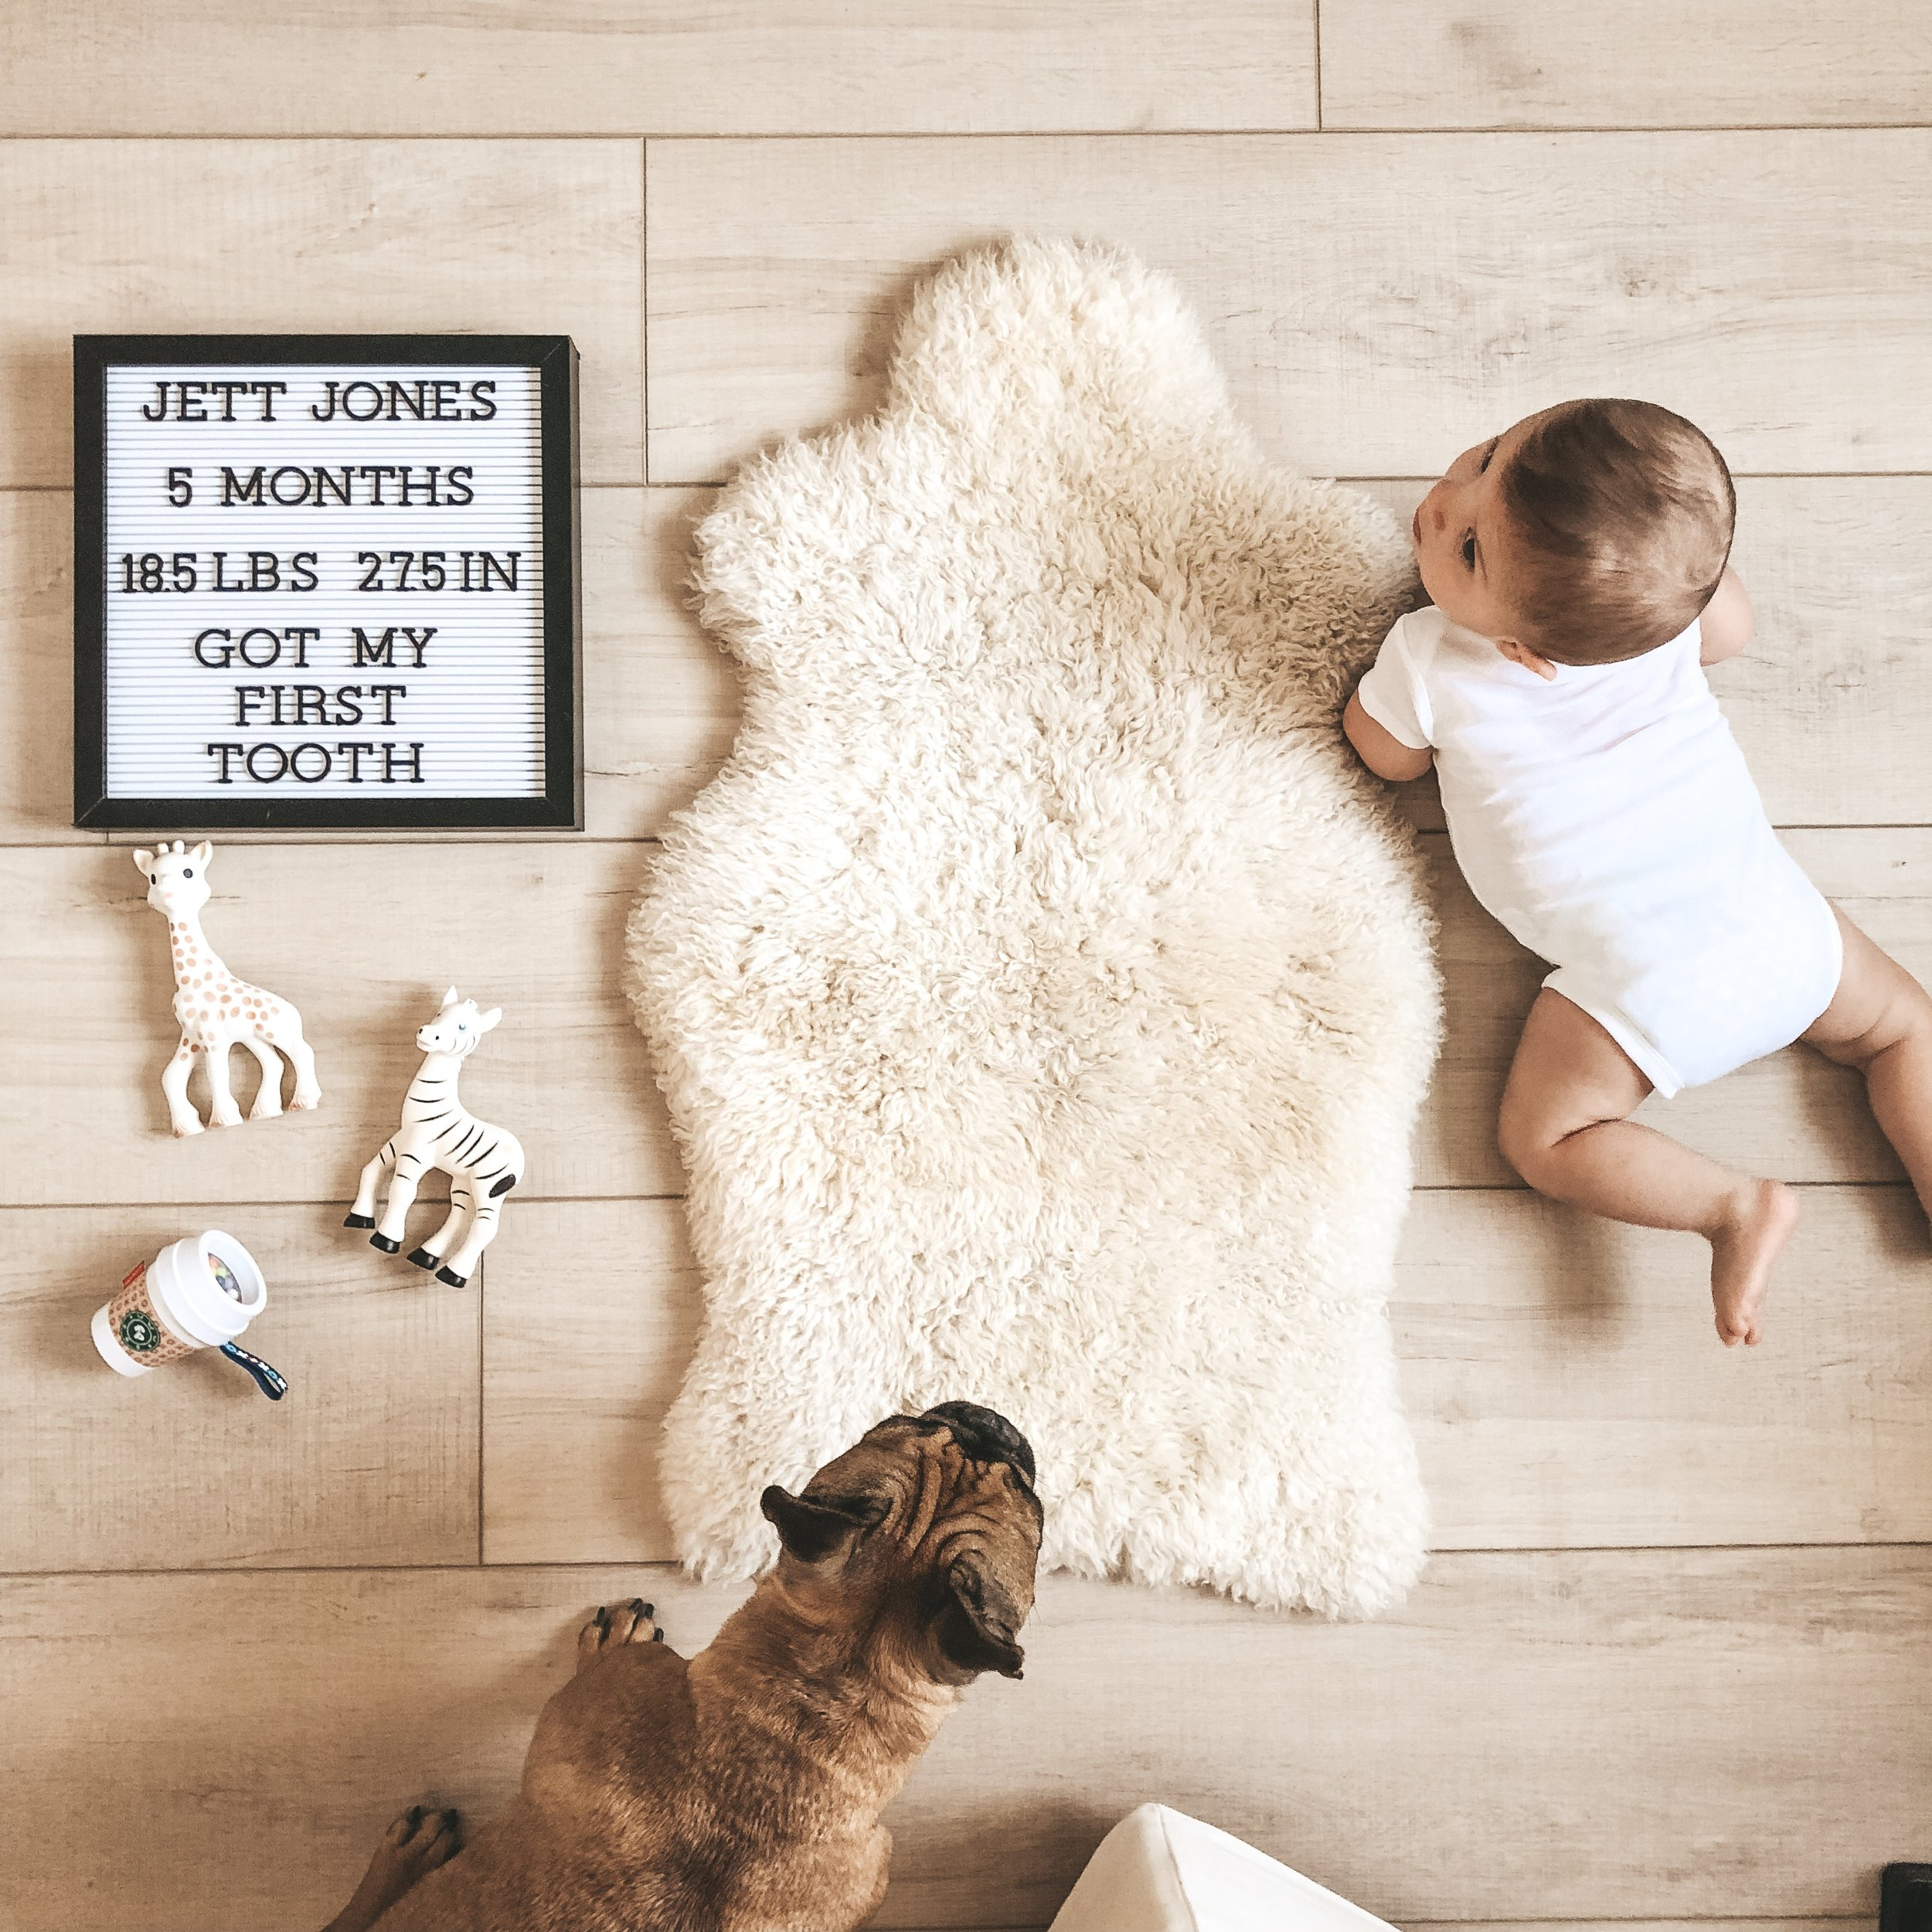 Monthly baby photos.